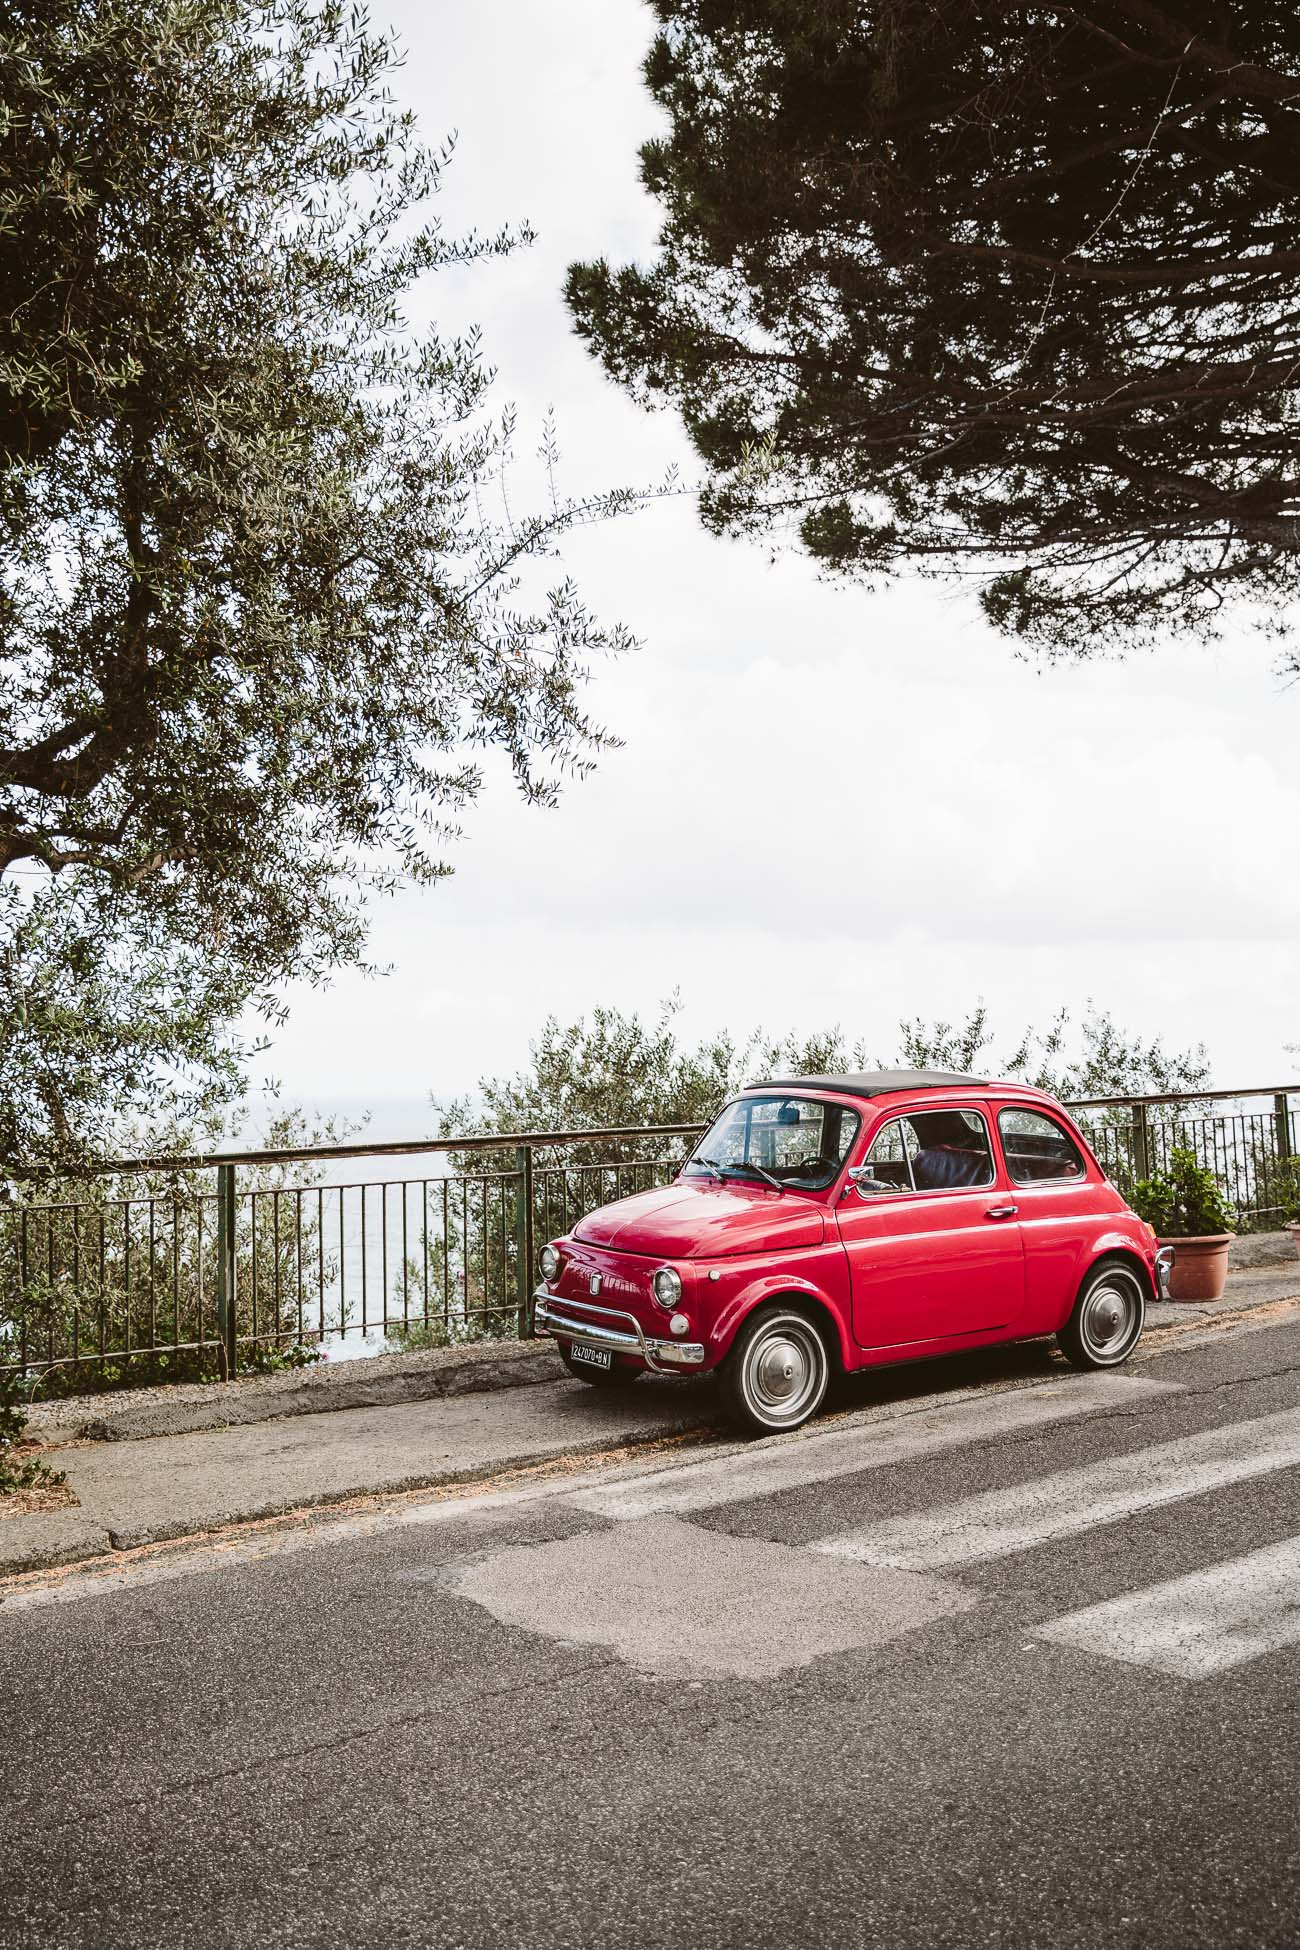 Red Fiat Cinquecento at the Amalfi Coast